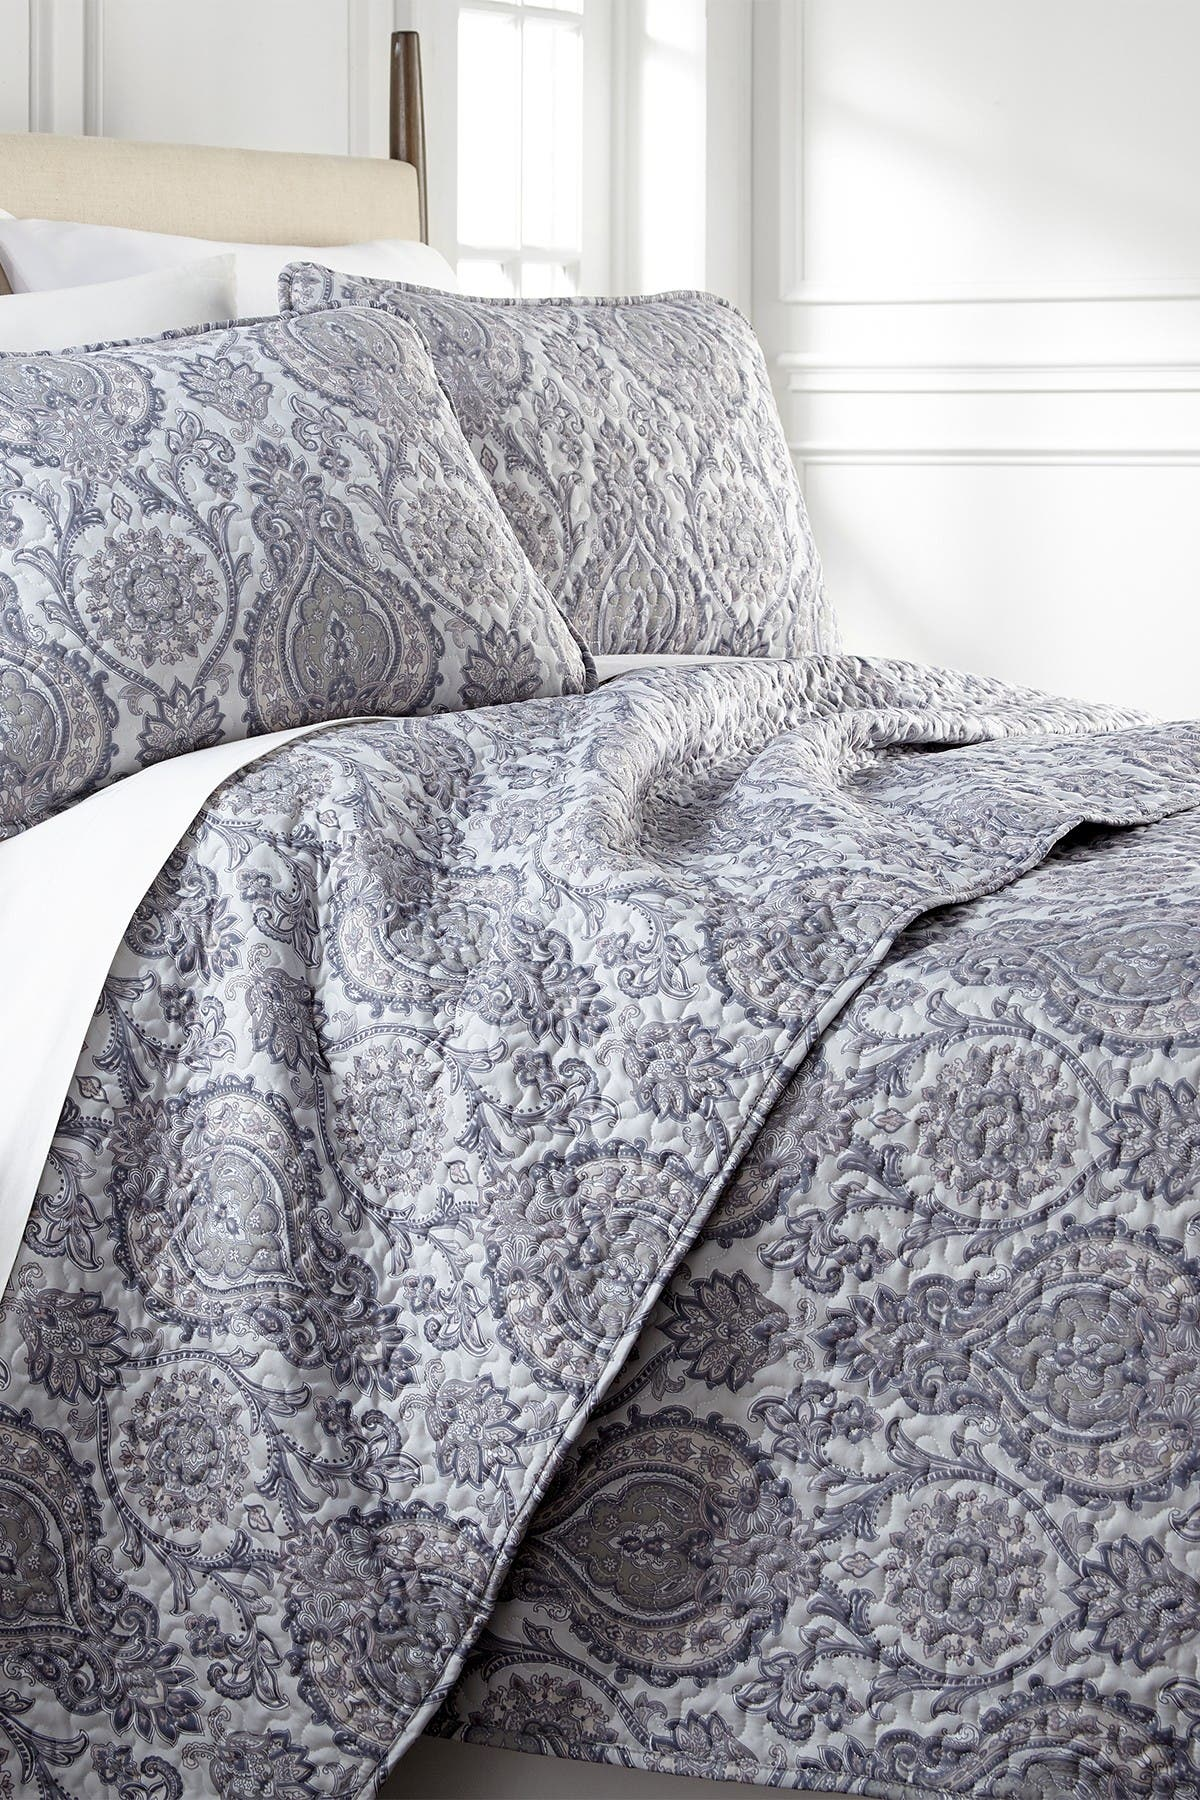 Image of SOUTHSHORE FINE LINENS Full/Queen Sized Luxury Premium Collection Ultra-Soft Quilt Cover Set - Paisley Grey